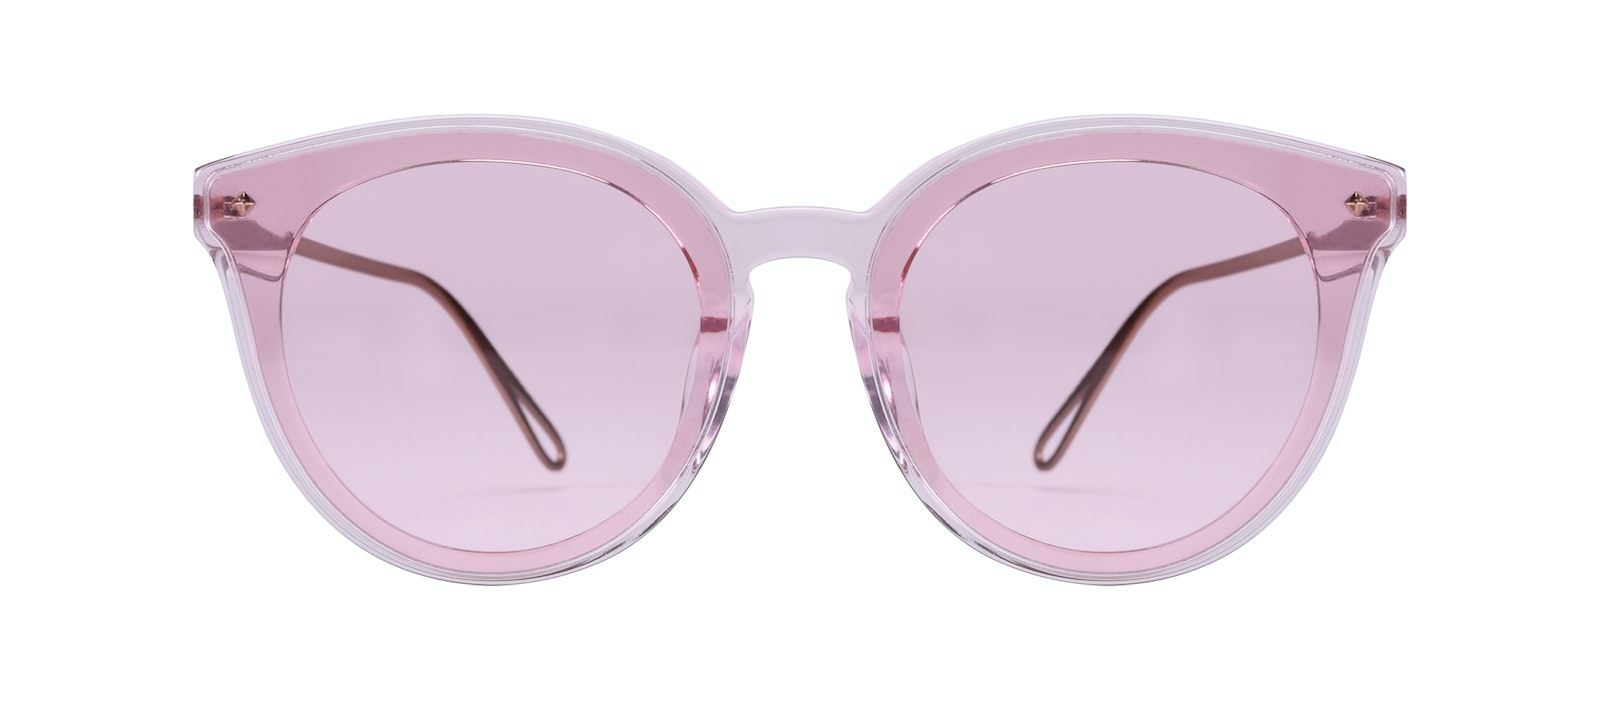 8c5bbf12c9f1 Affordable Fashion Glasses Cat Eye Sunglasses Women Icone Rose Front